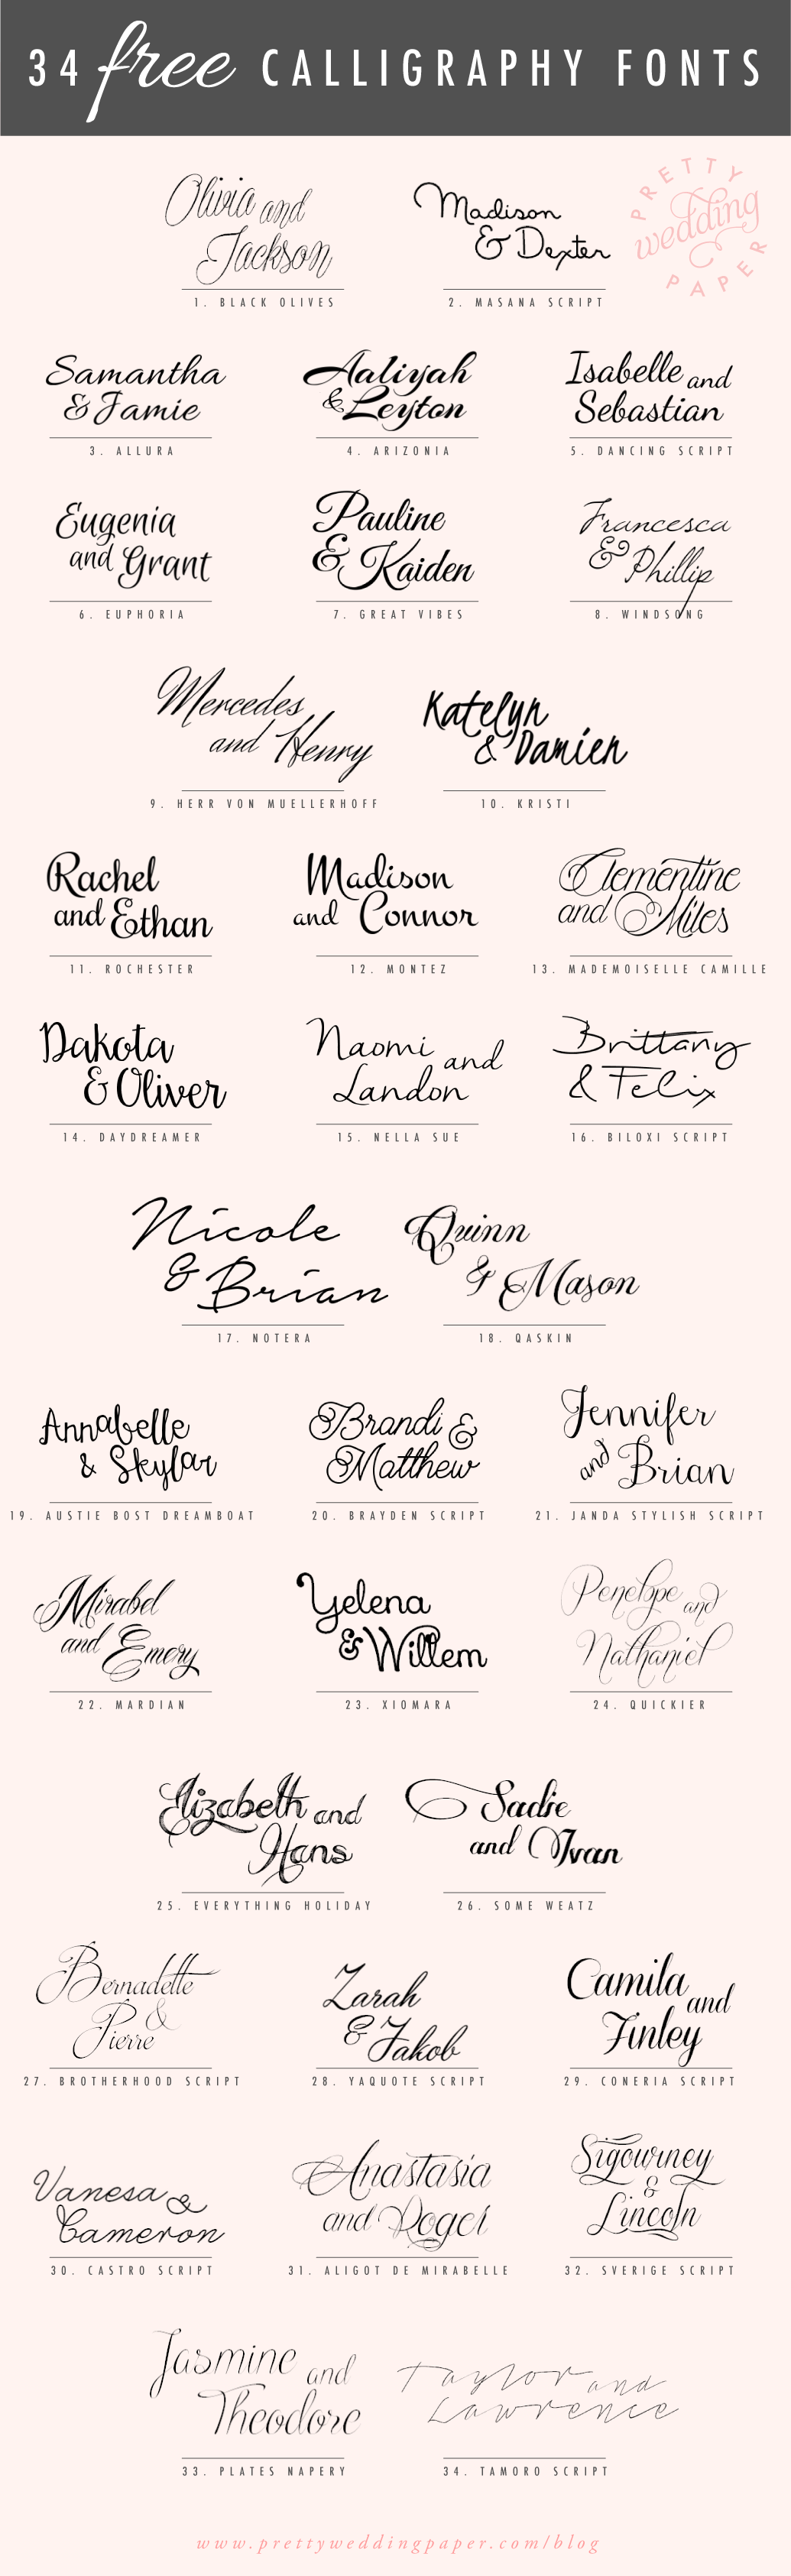 34 Free Calligraphy Script Fonts For